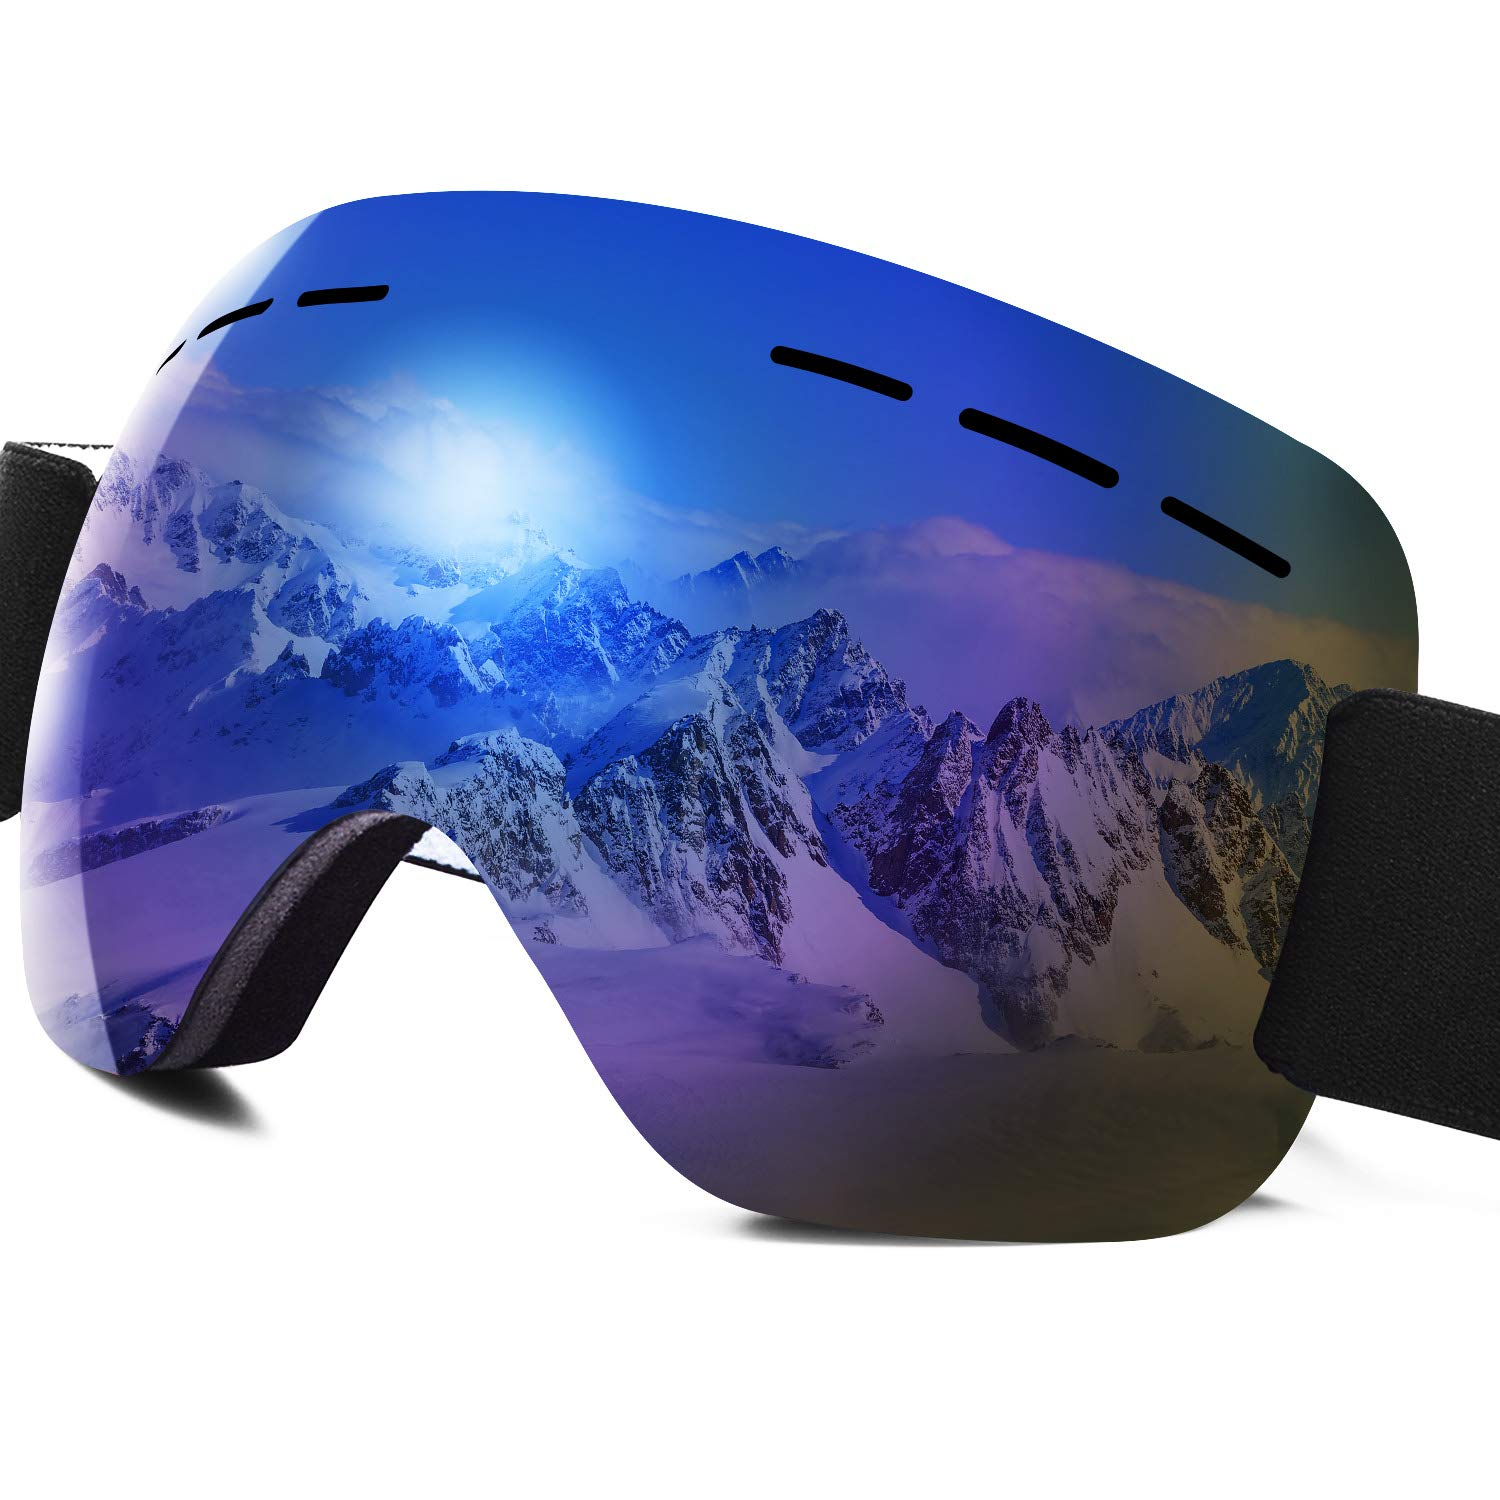 PHYLES Ski Goggles PRO - Frameless Snow Goggles, Dual Lens with Anti Fog & 100% UV400 Protection Snow Goggles for Men & Women (Large)